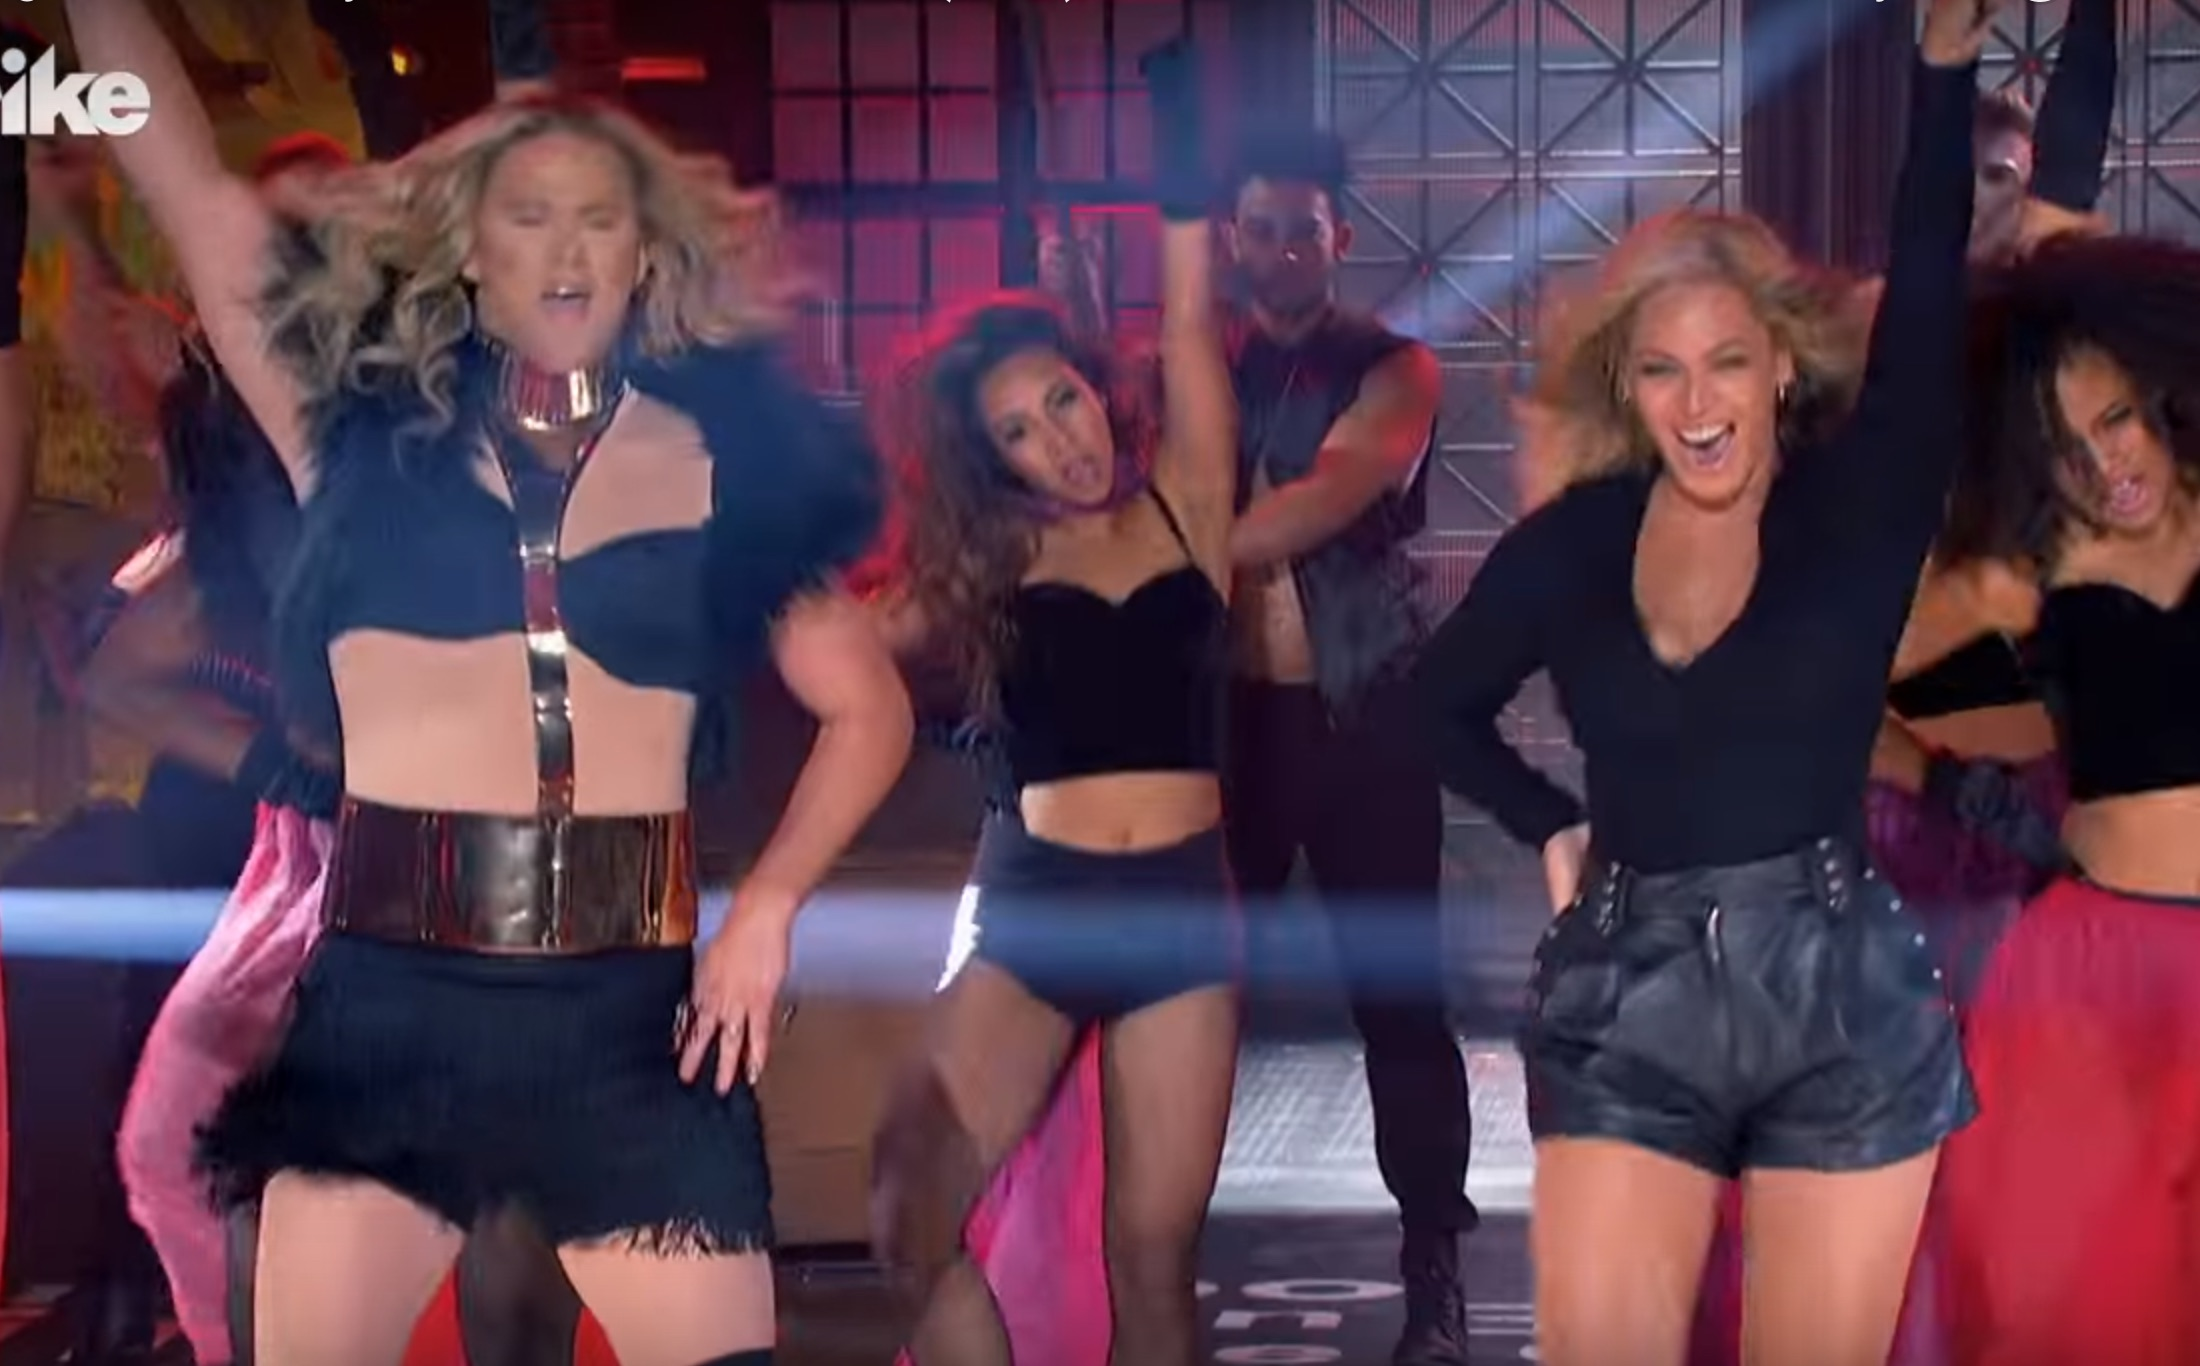 Beyonce joined Channing Tatum on stage for 'Lip Sync Battle' last night and blew our minds